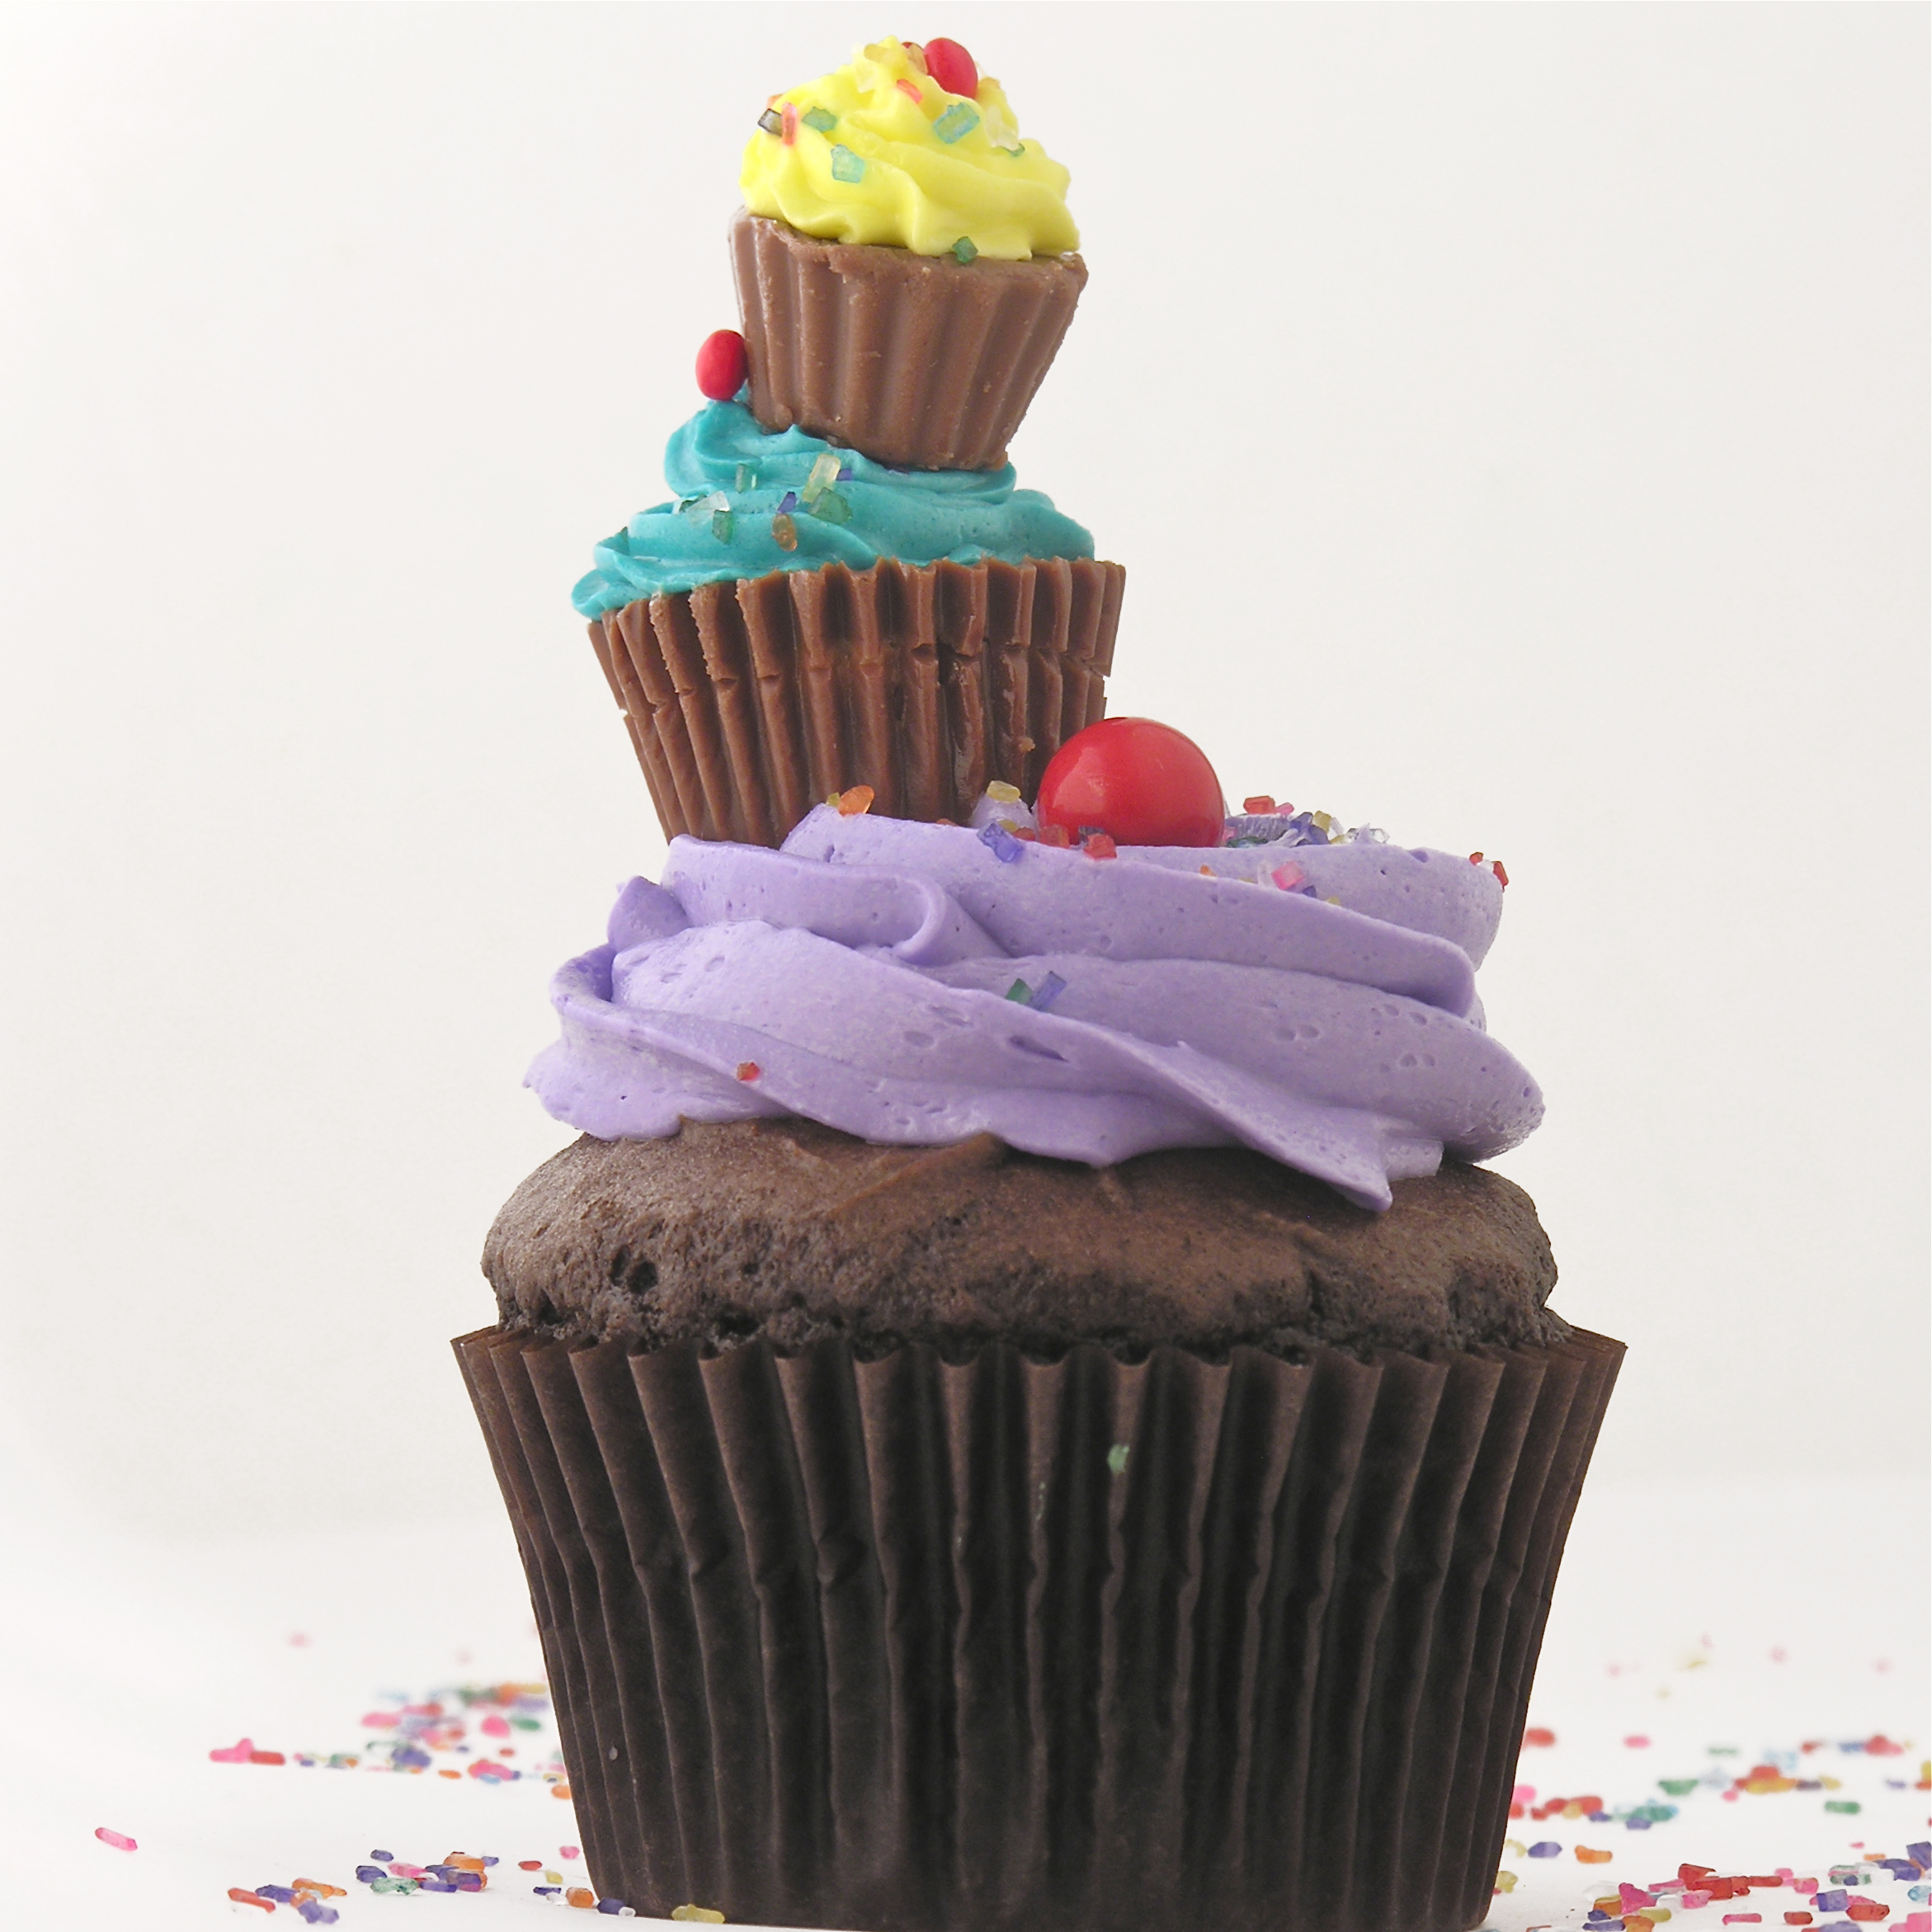 Big Cupcake Images : A big pile of cupcakes! eASYbAKED